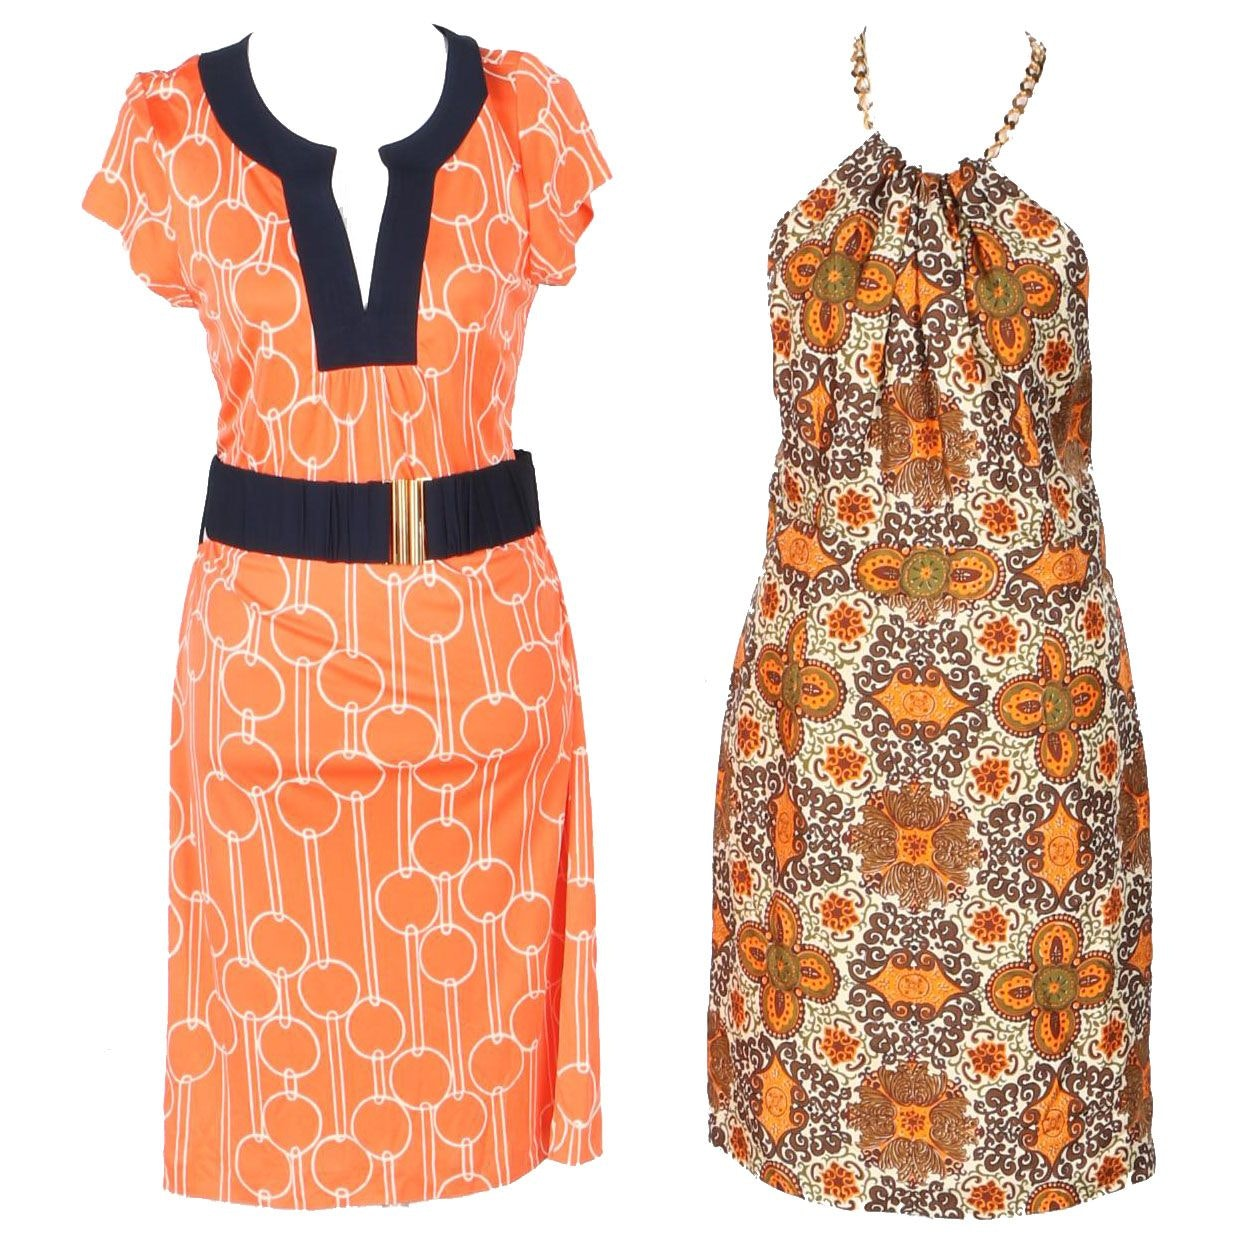 Trina Turk and Milly Dresses